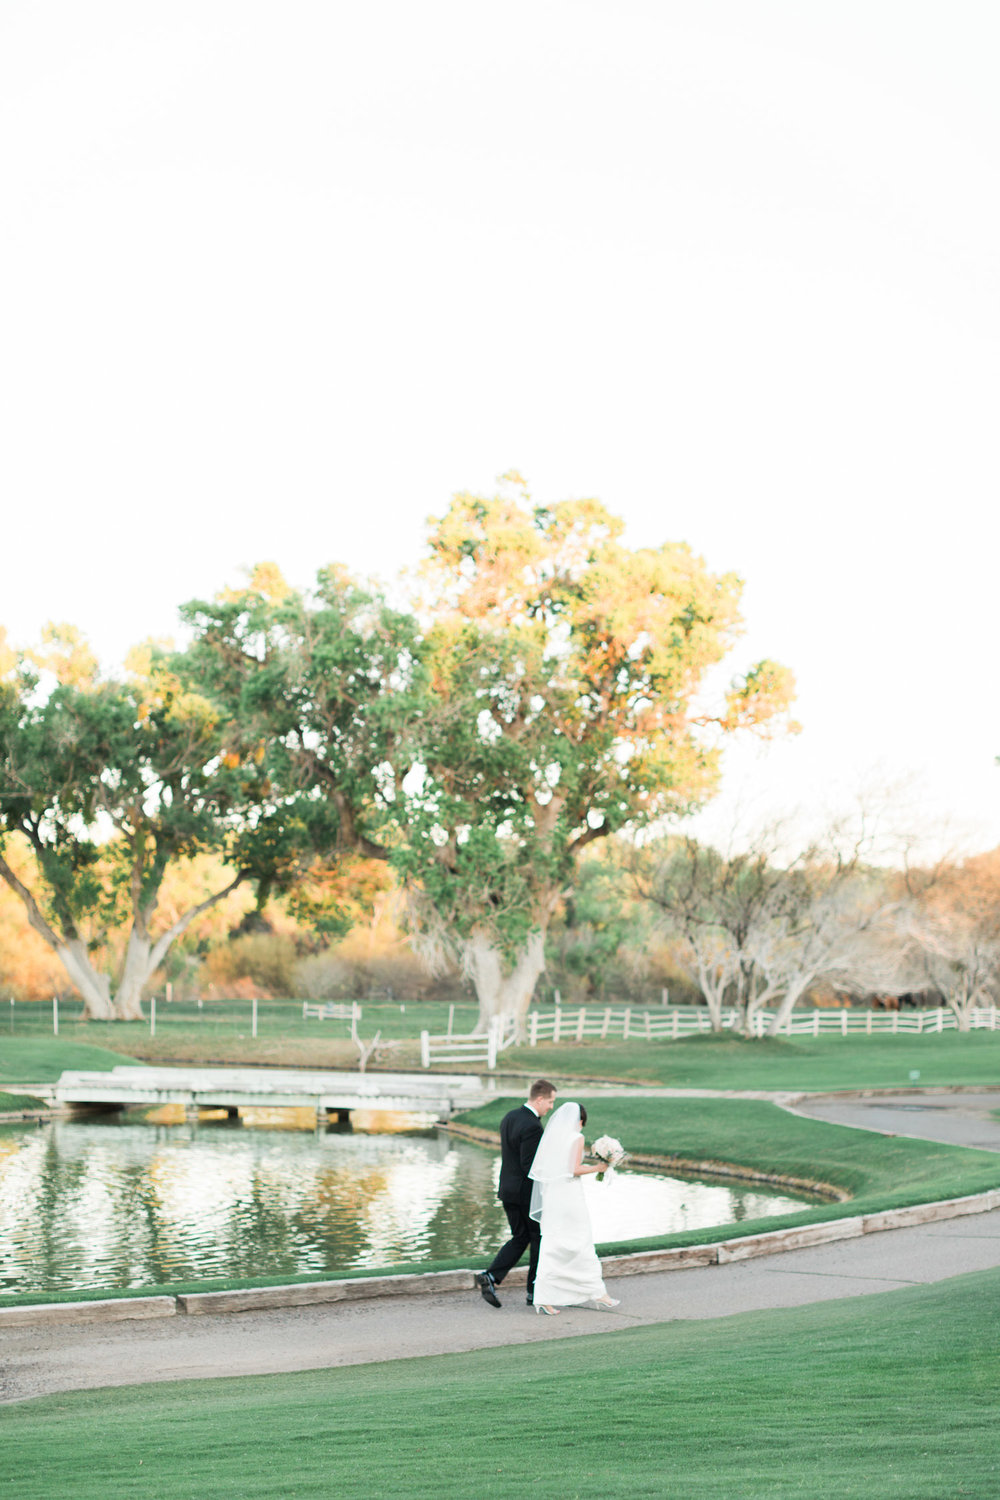 Tucson Tubac wedding venue, Tubac Golf Resort